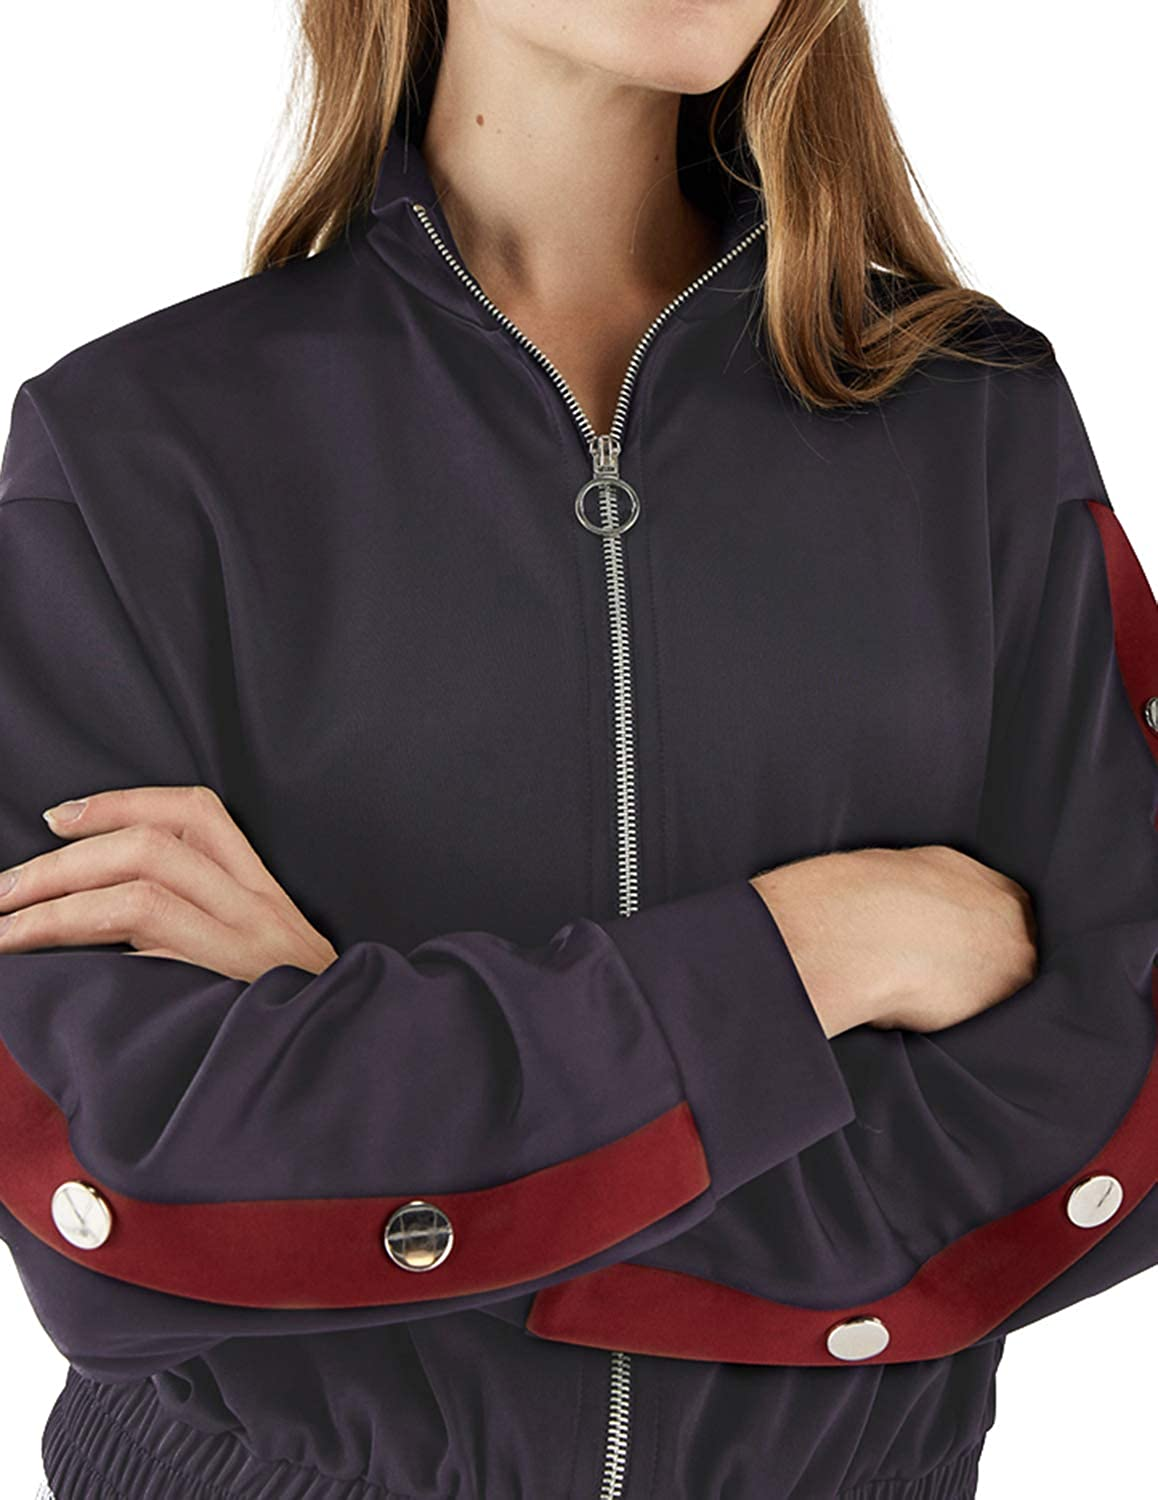 HaoDuoYi Womens Simple Casual Sports Half-high Collar Side Strips Snap-on Decorative Metal Zipper Jacket